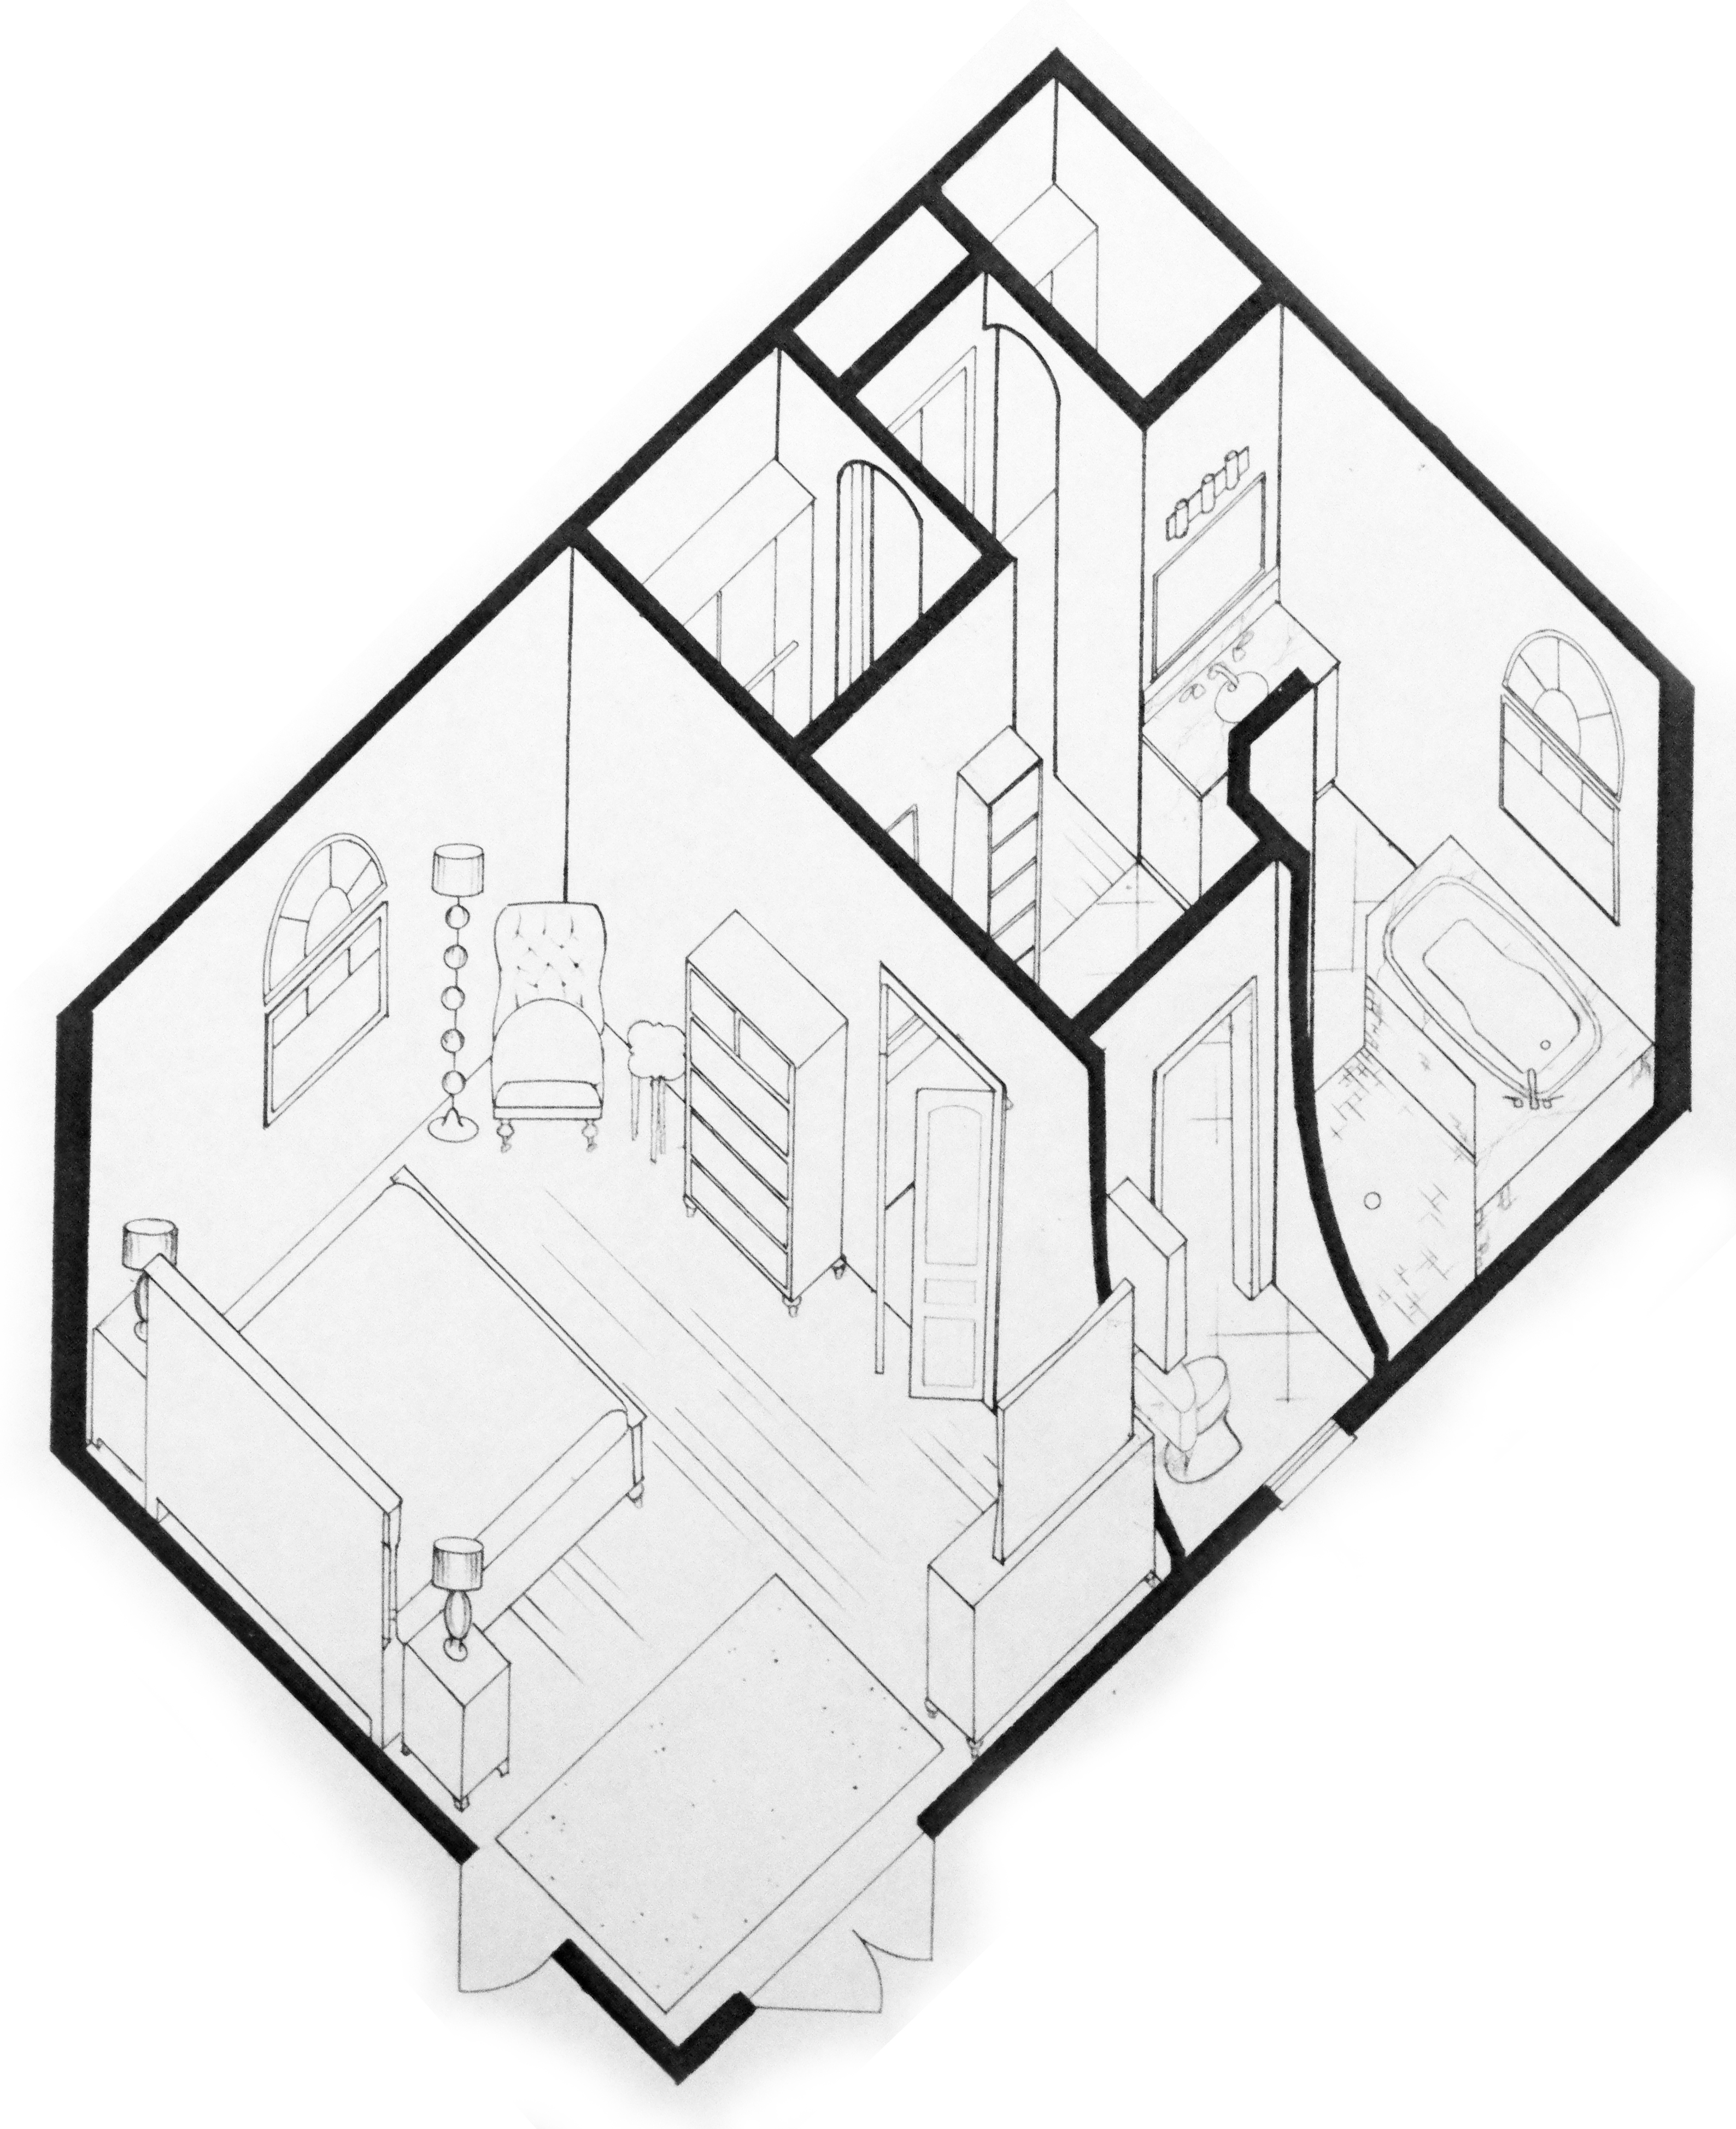 Inside Of House Drawing at GetDrawings